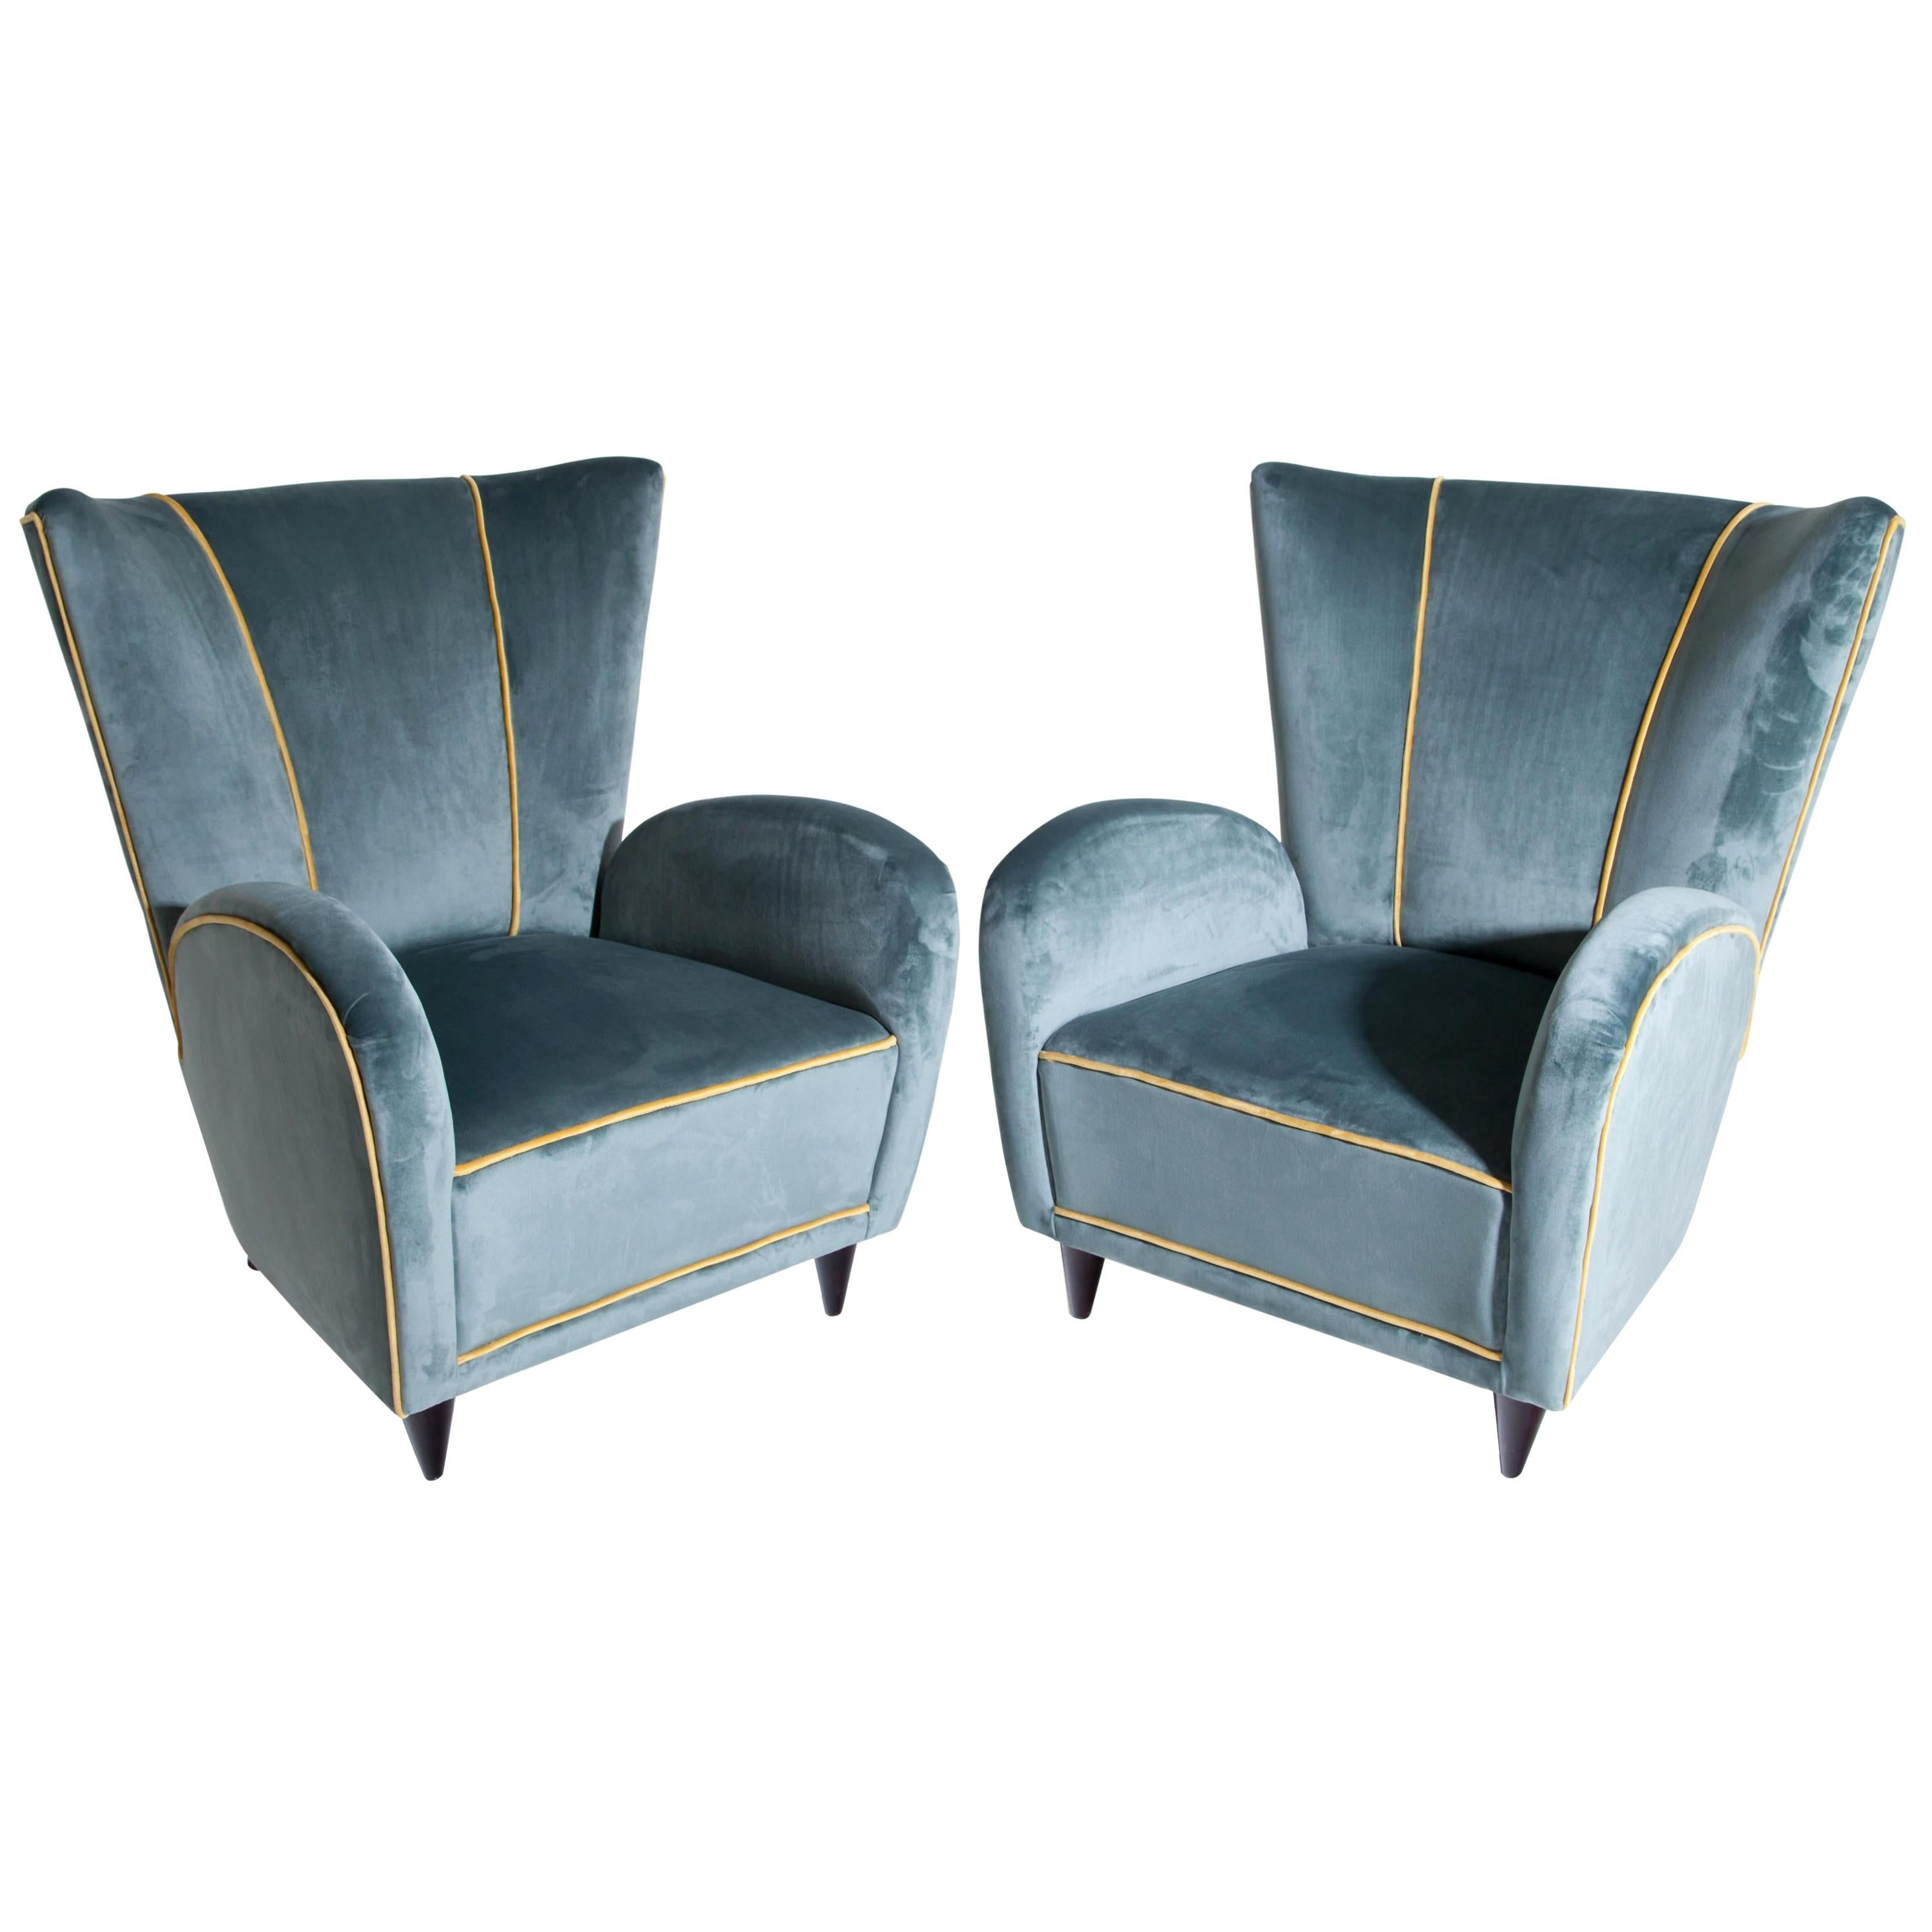 Armchairs, Attributed to Paolo Buffa, Italy, 1950s